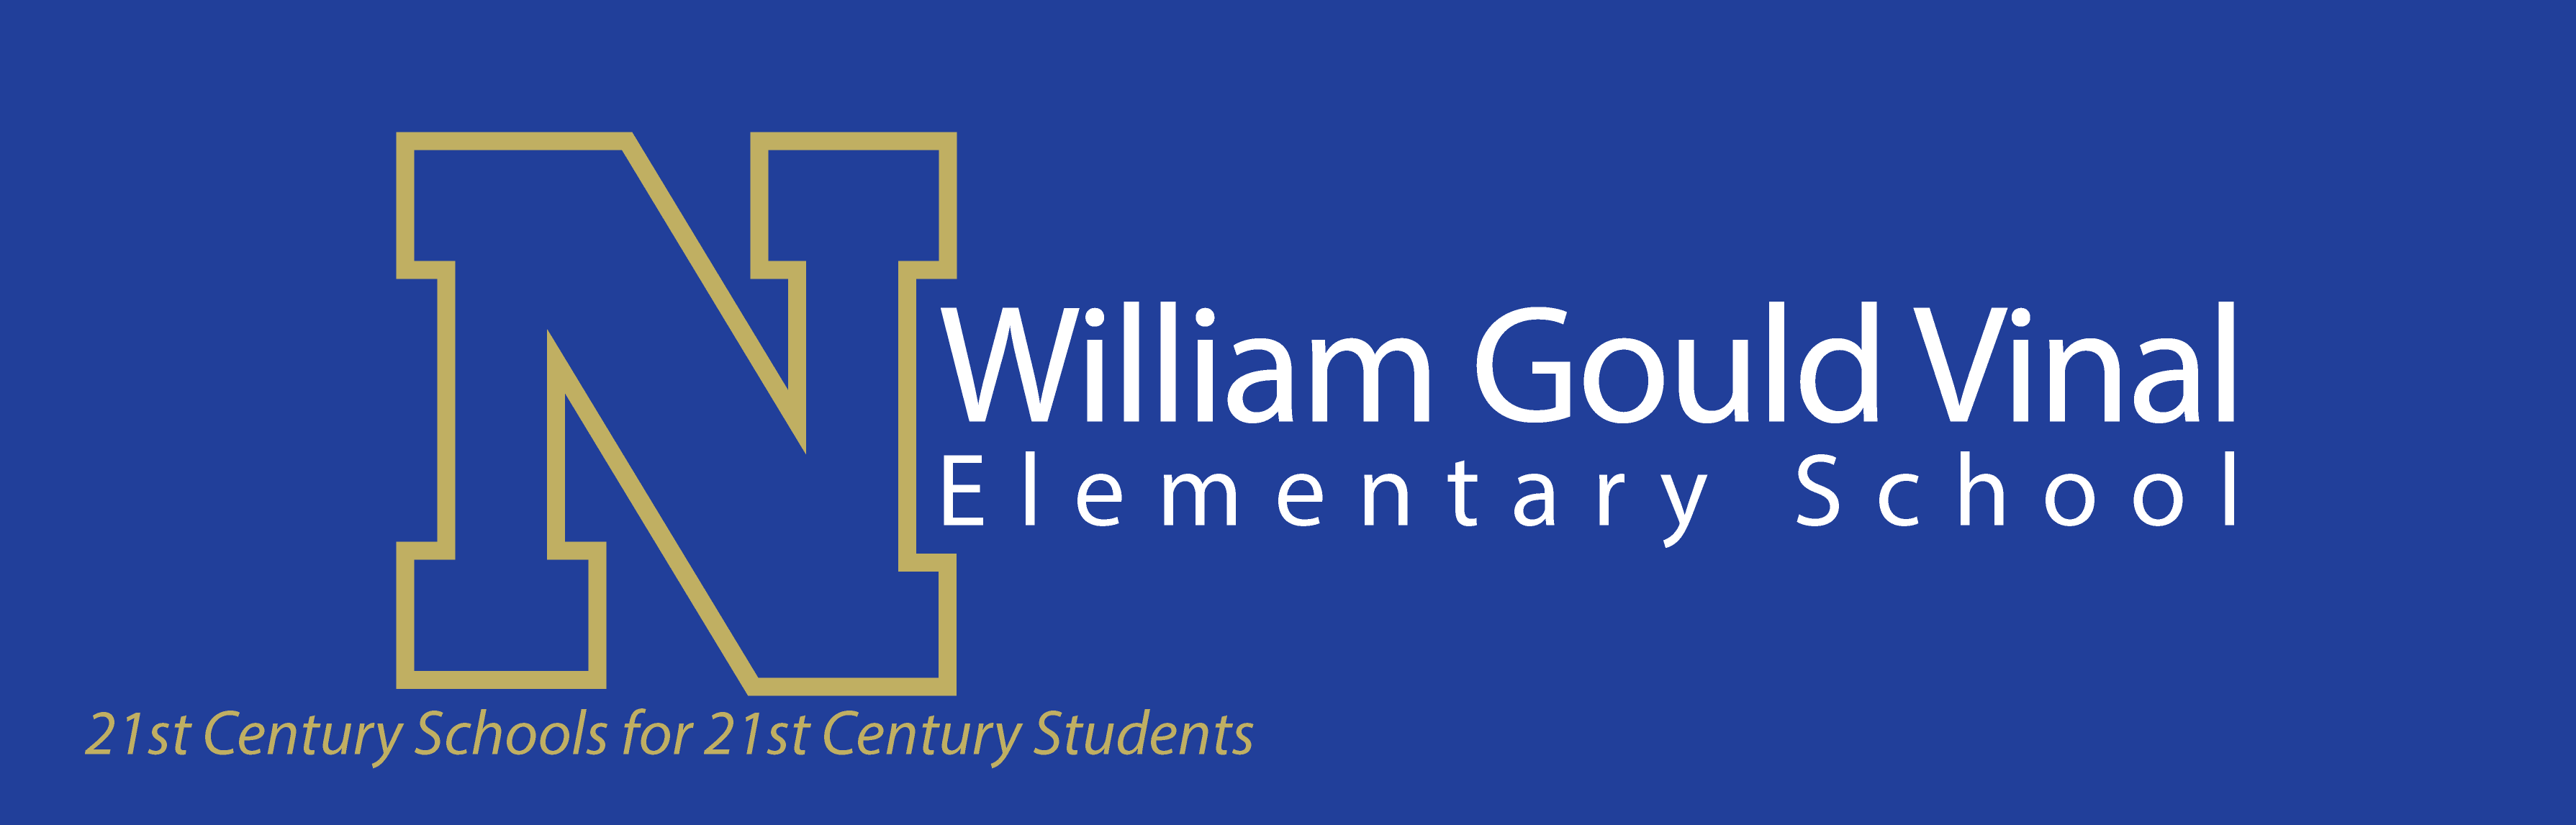 William Gould Vinal Elementary School